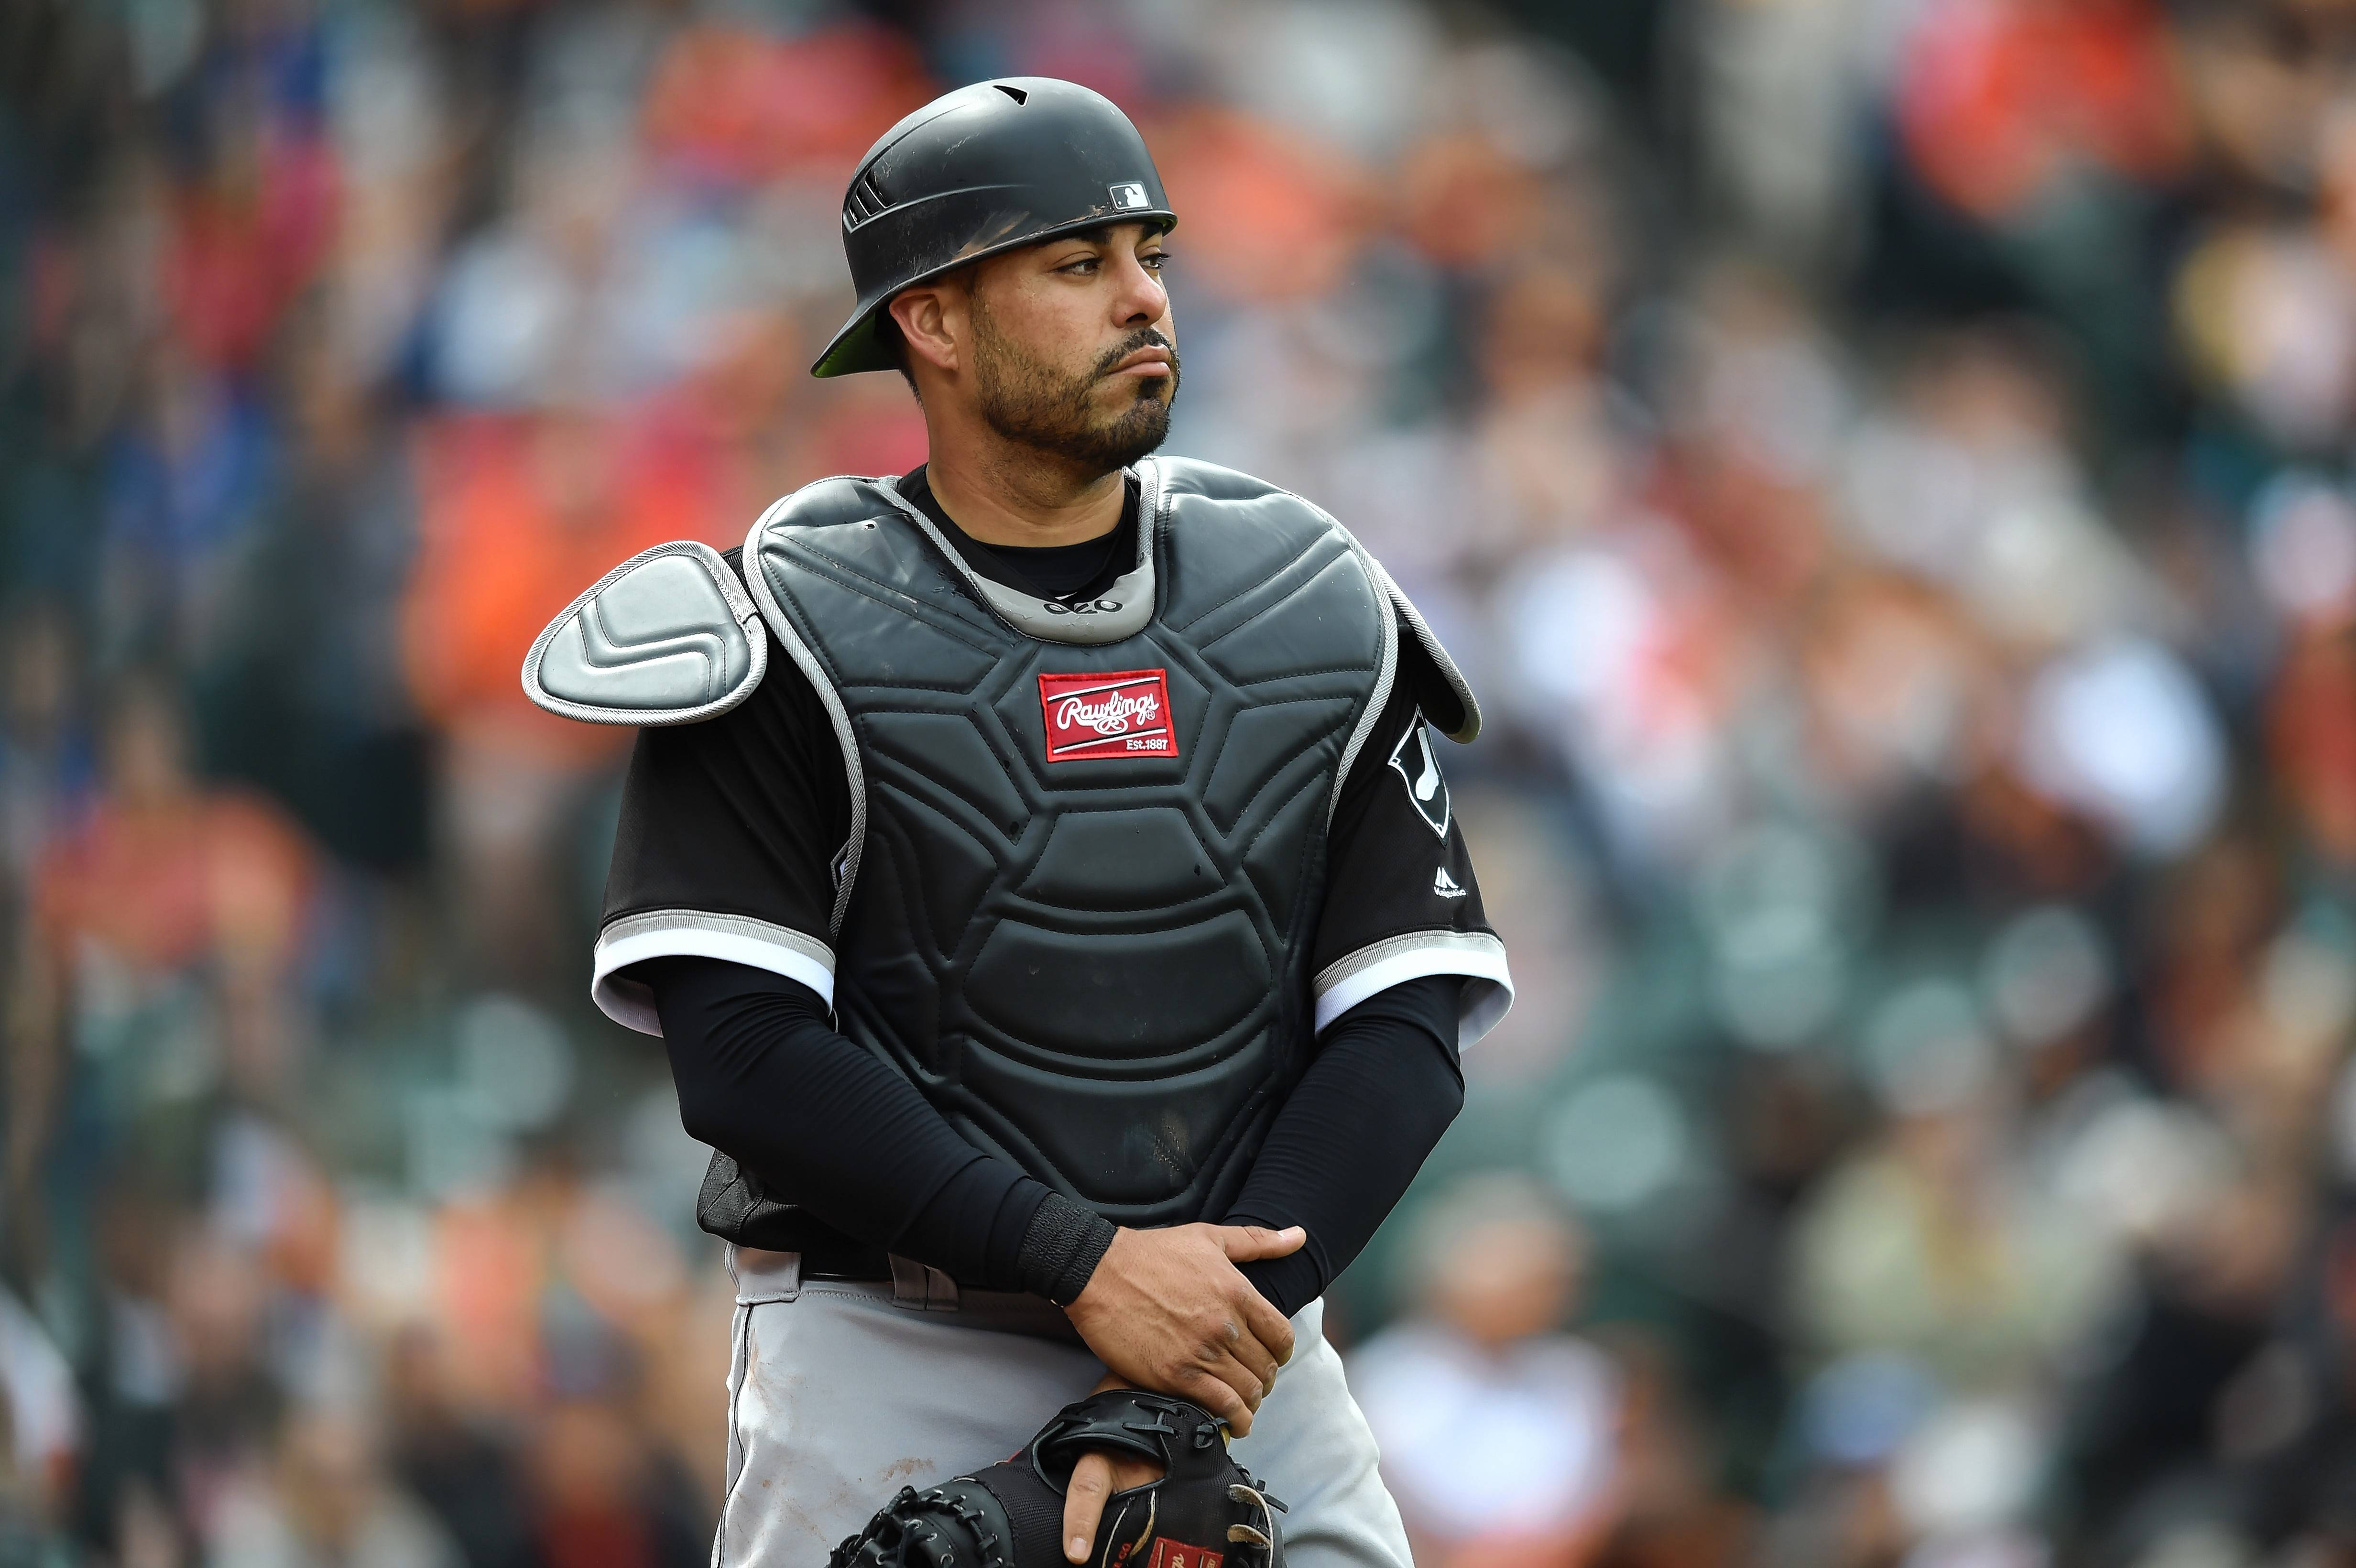 Chicago White Sox's catcher Geovany Soto looks on between innings during a baseball game against the Baltimore Orioles, Sunday, May 7, 2017, in Baltimore.